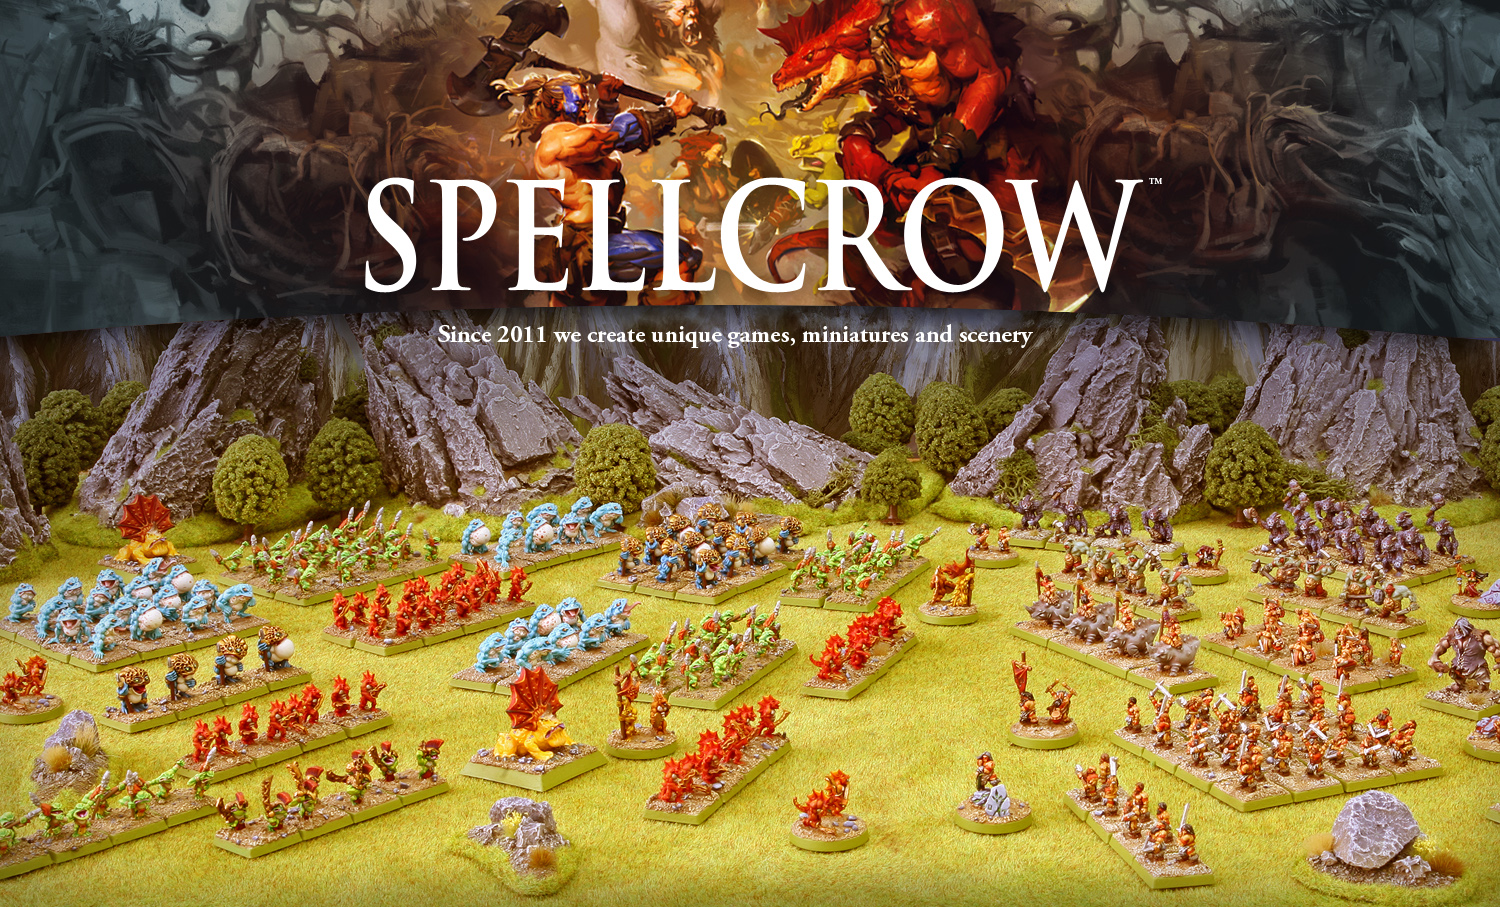 Spellcrow Ltd